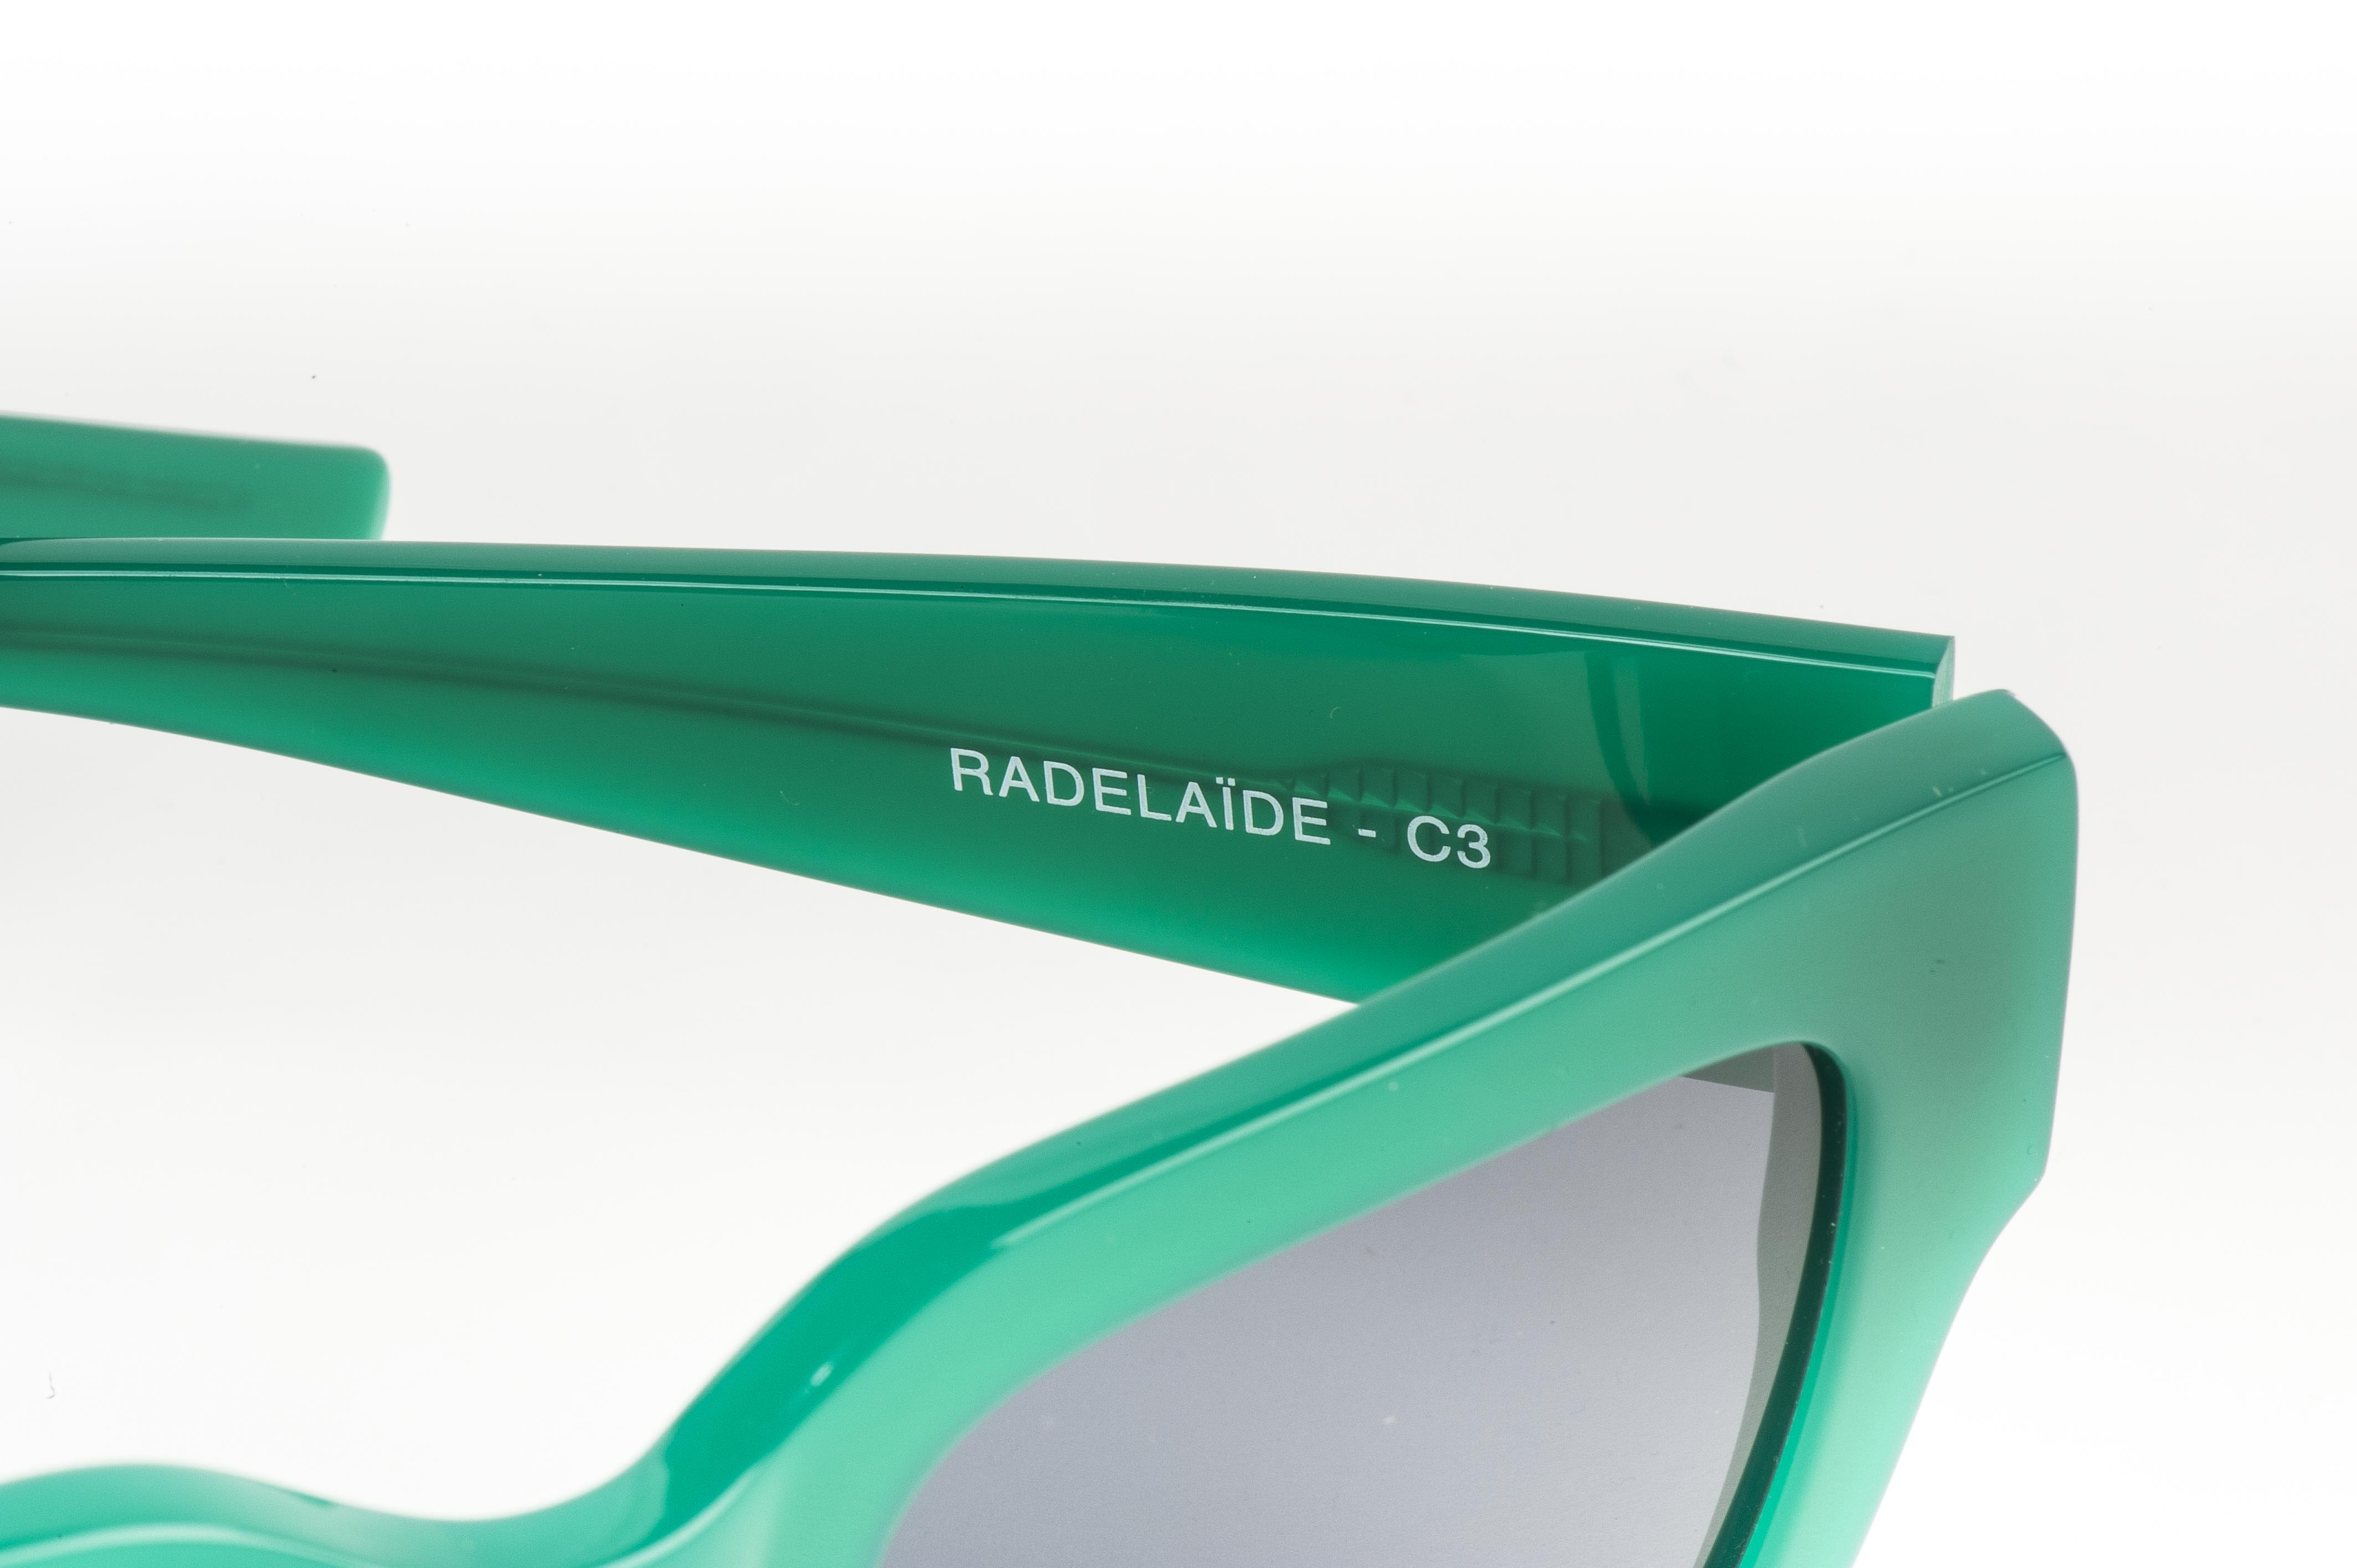 BASE Radelaide C3 グリーン